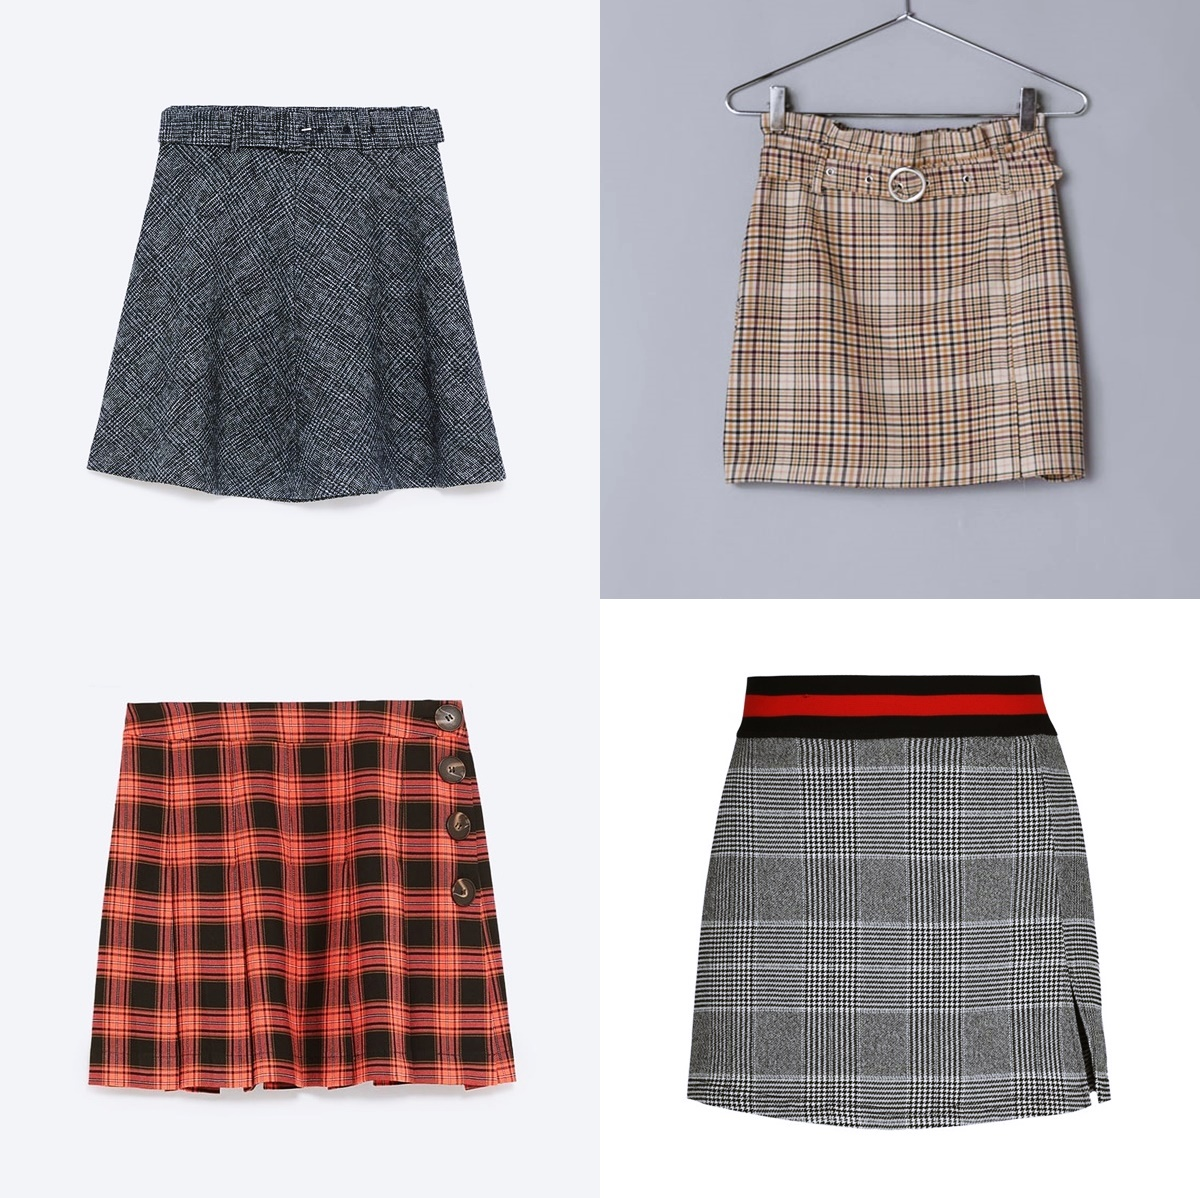 Plaid Mini Skirts: Trends and Outfits